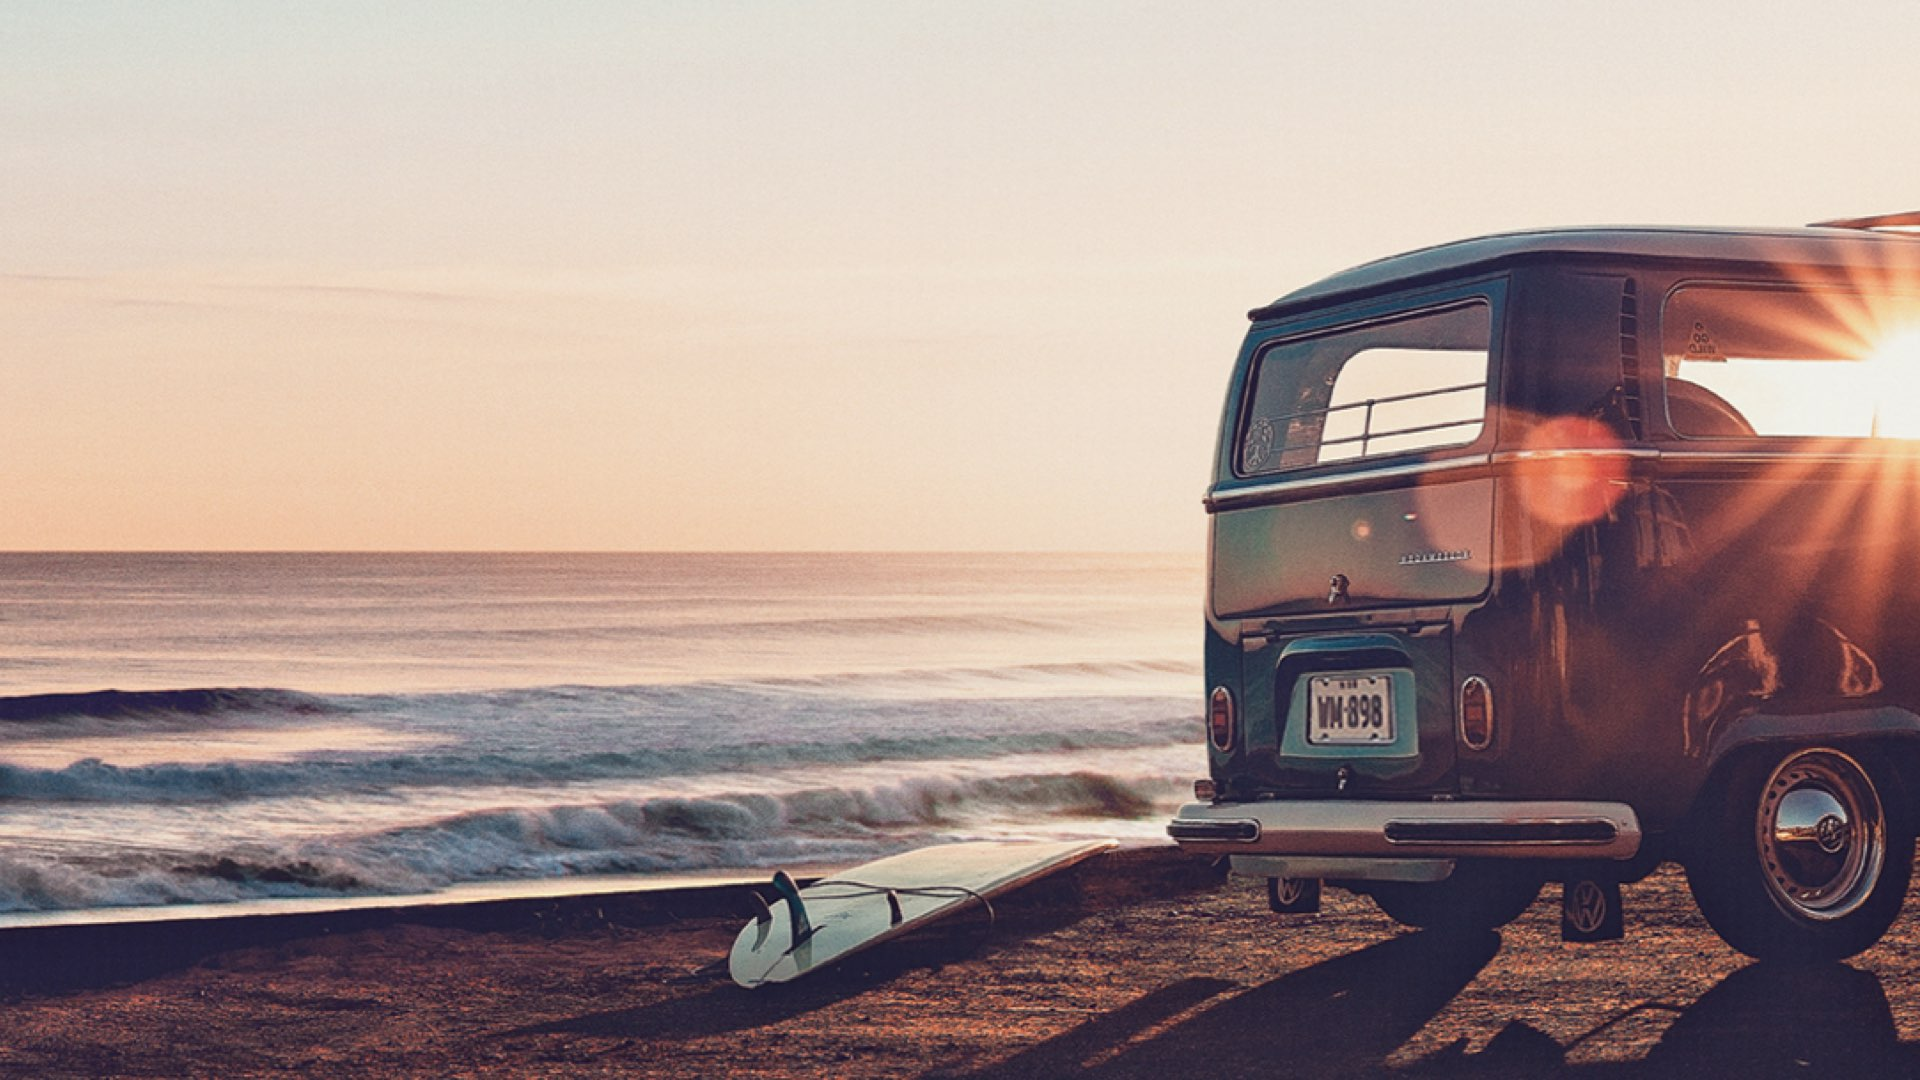 The Works VW Kombi van parked on the beach as the sun sets